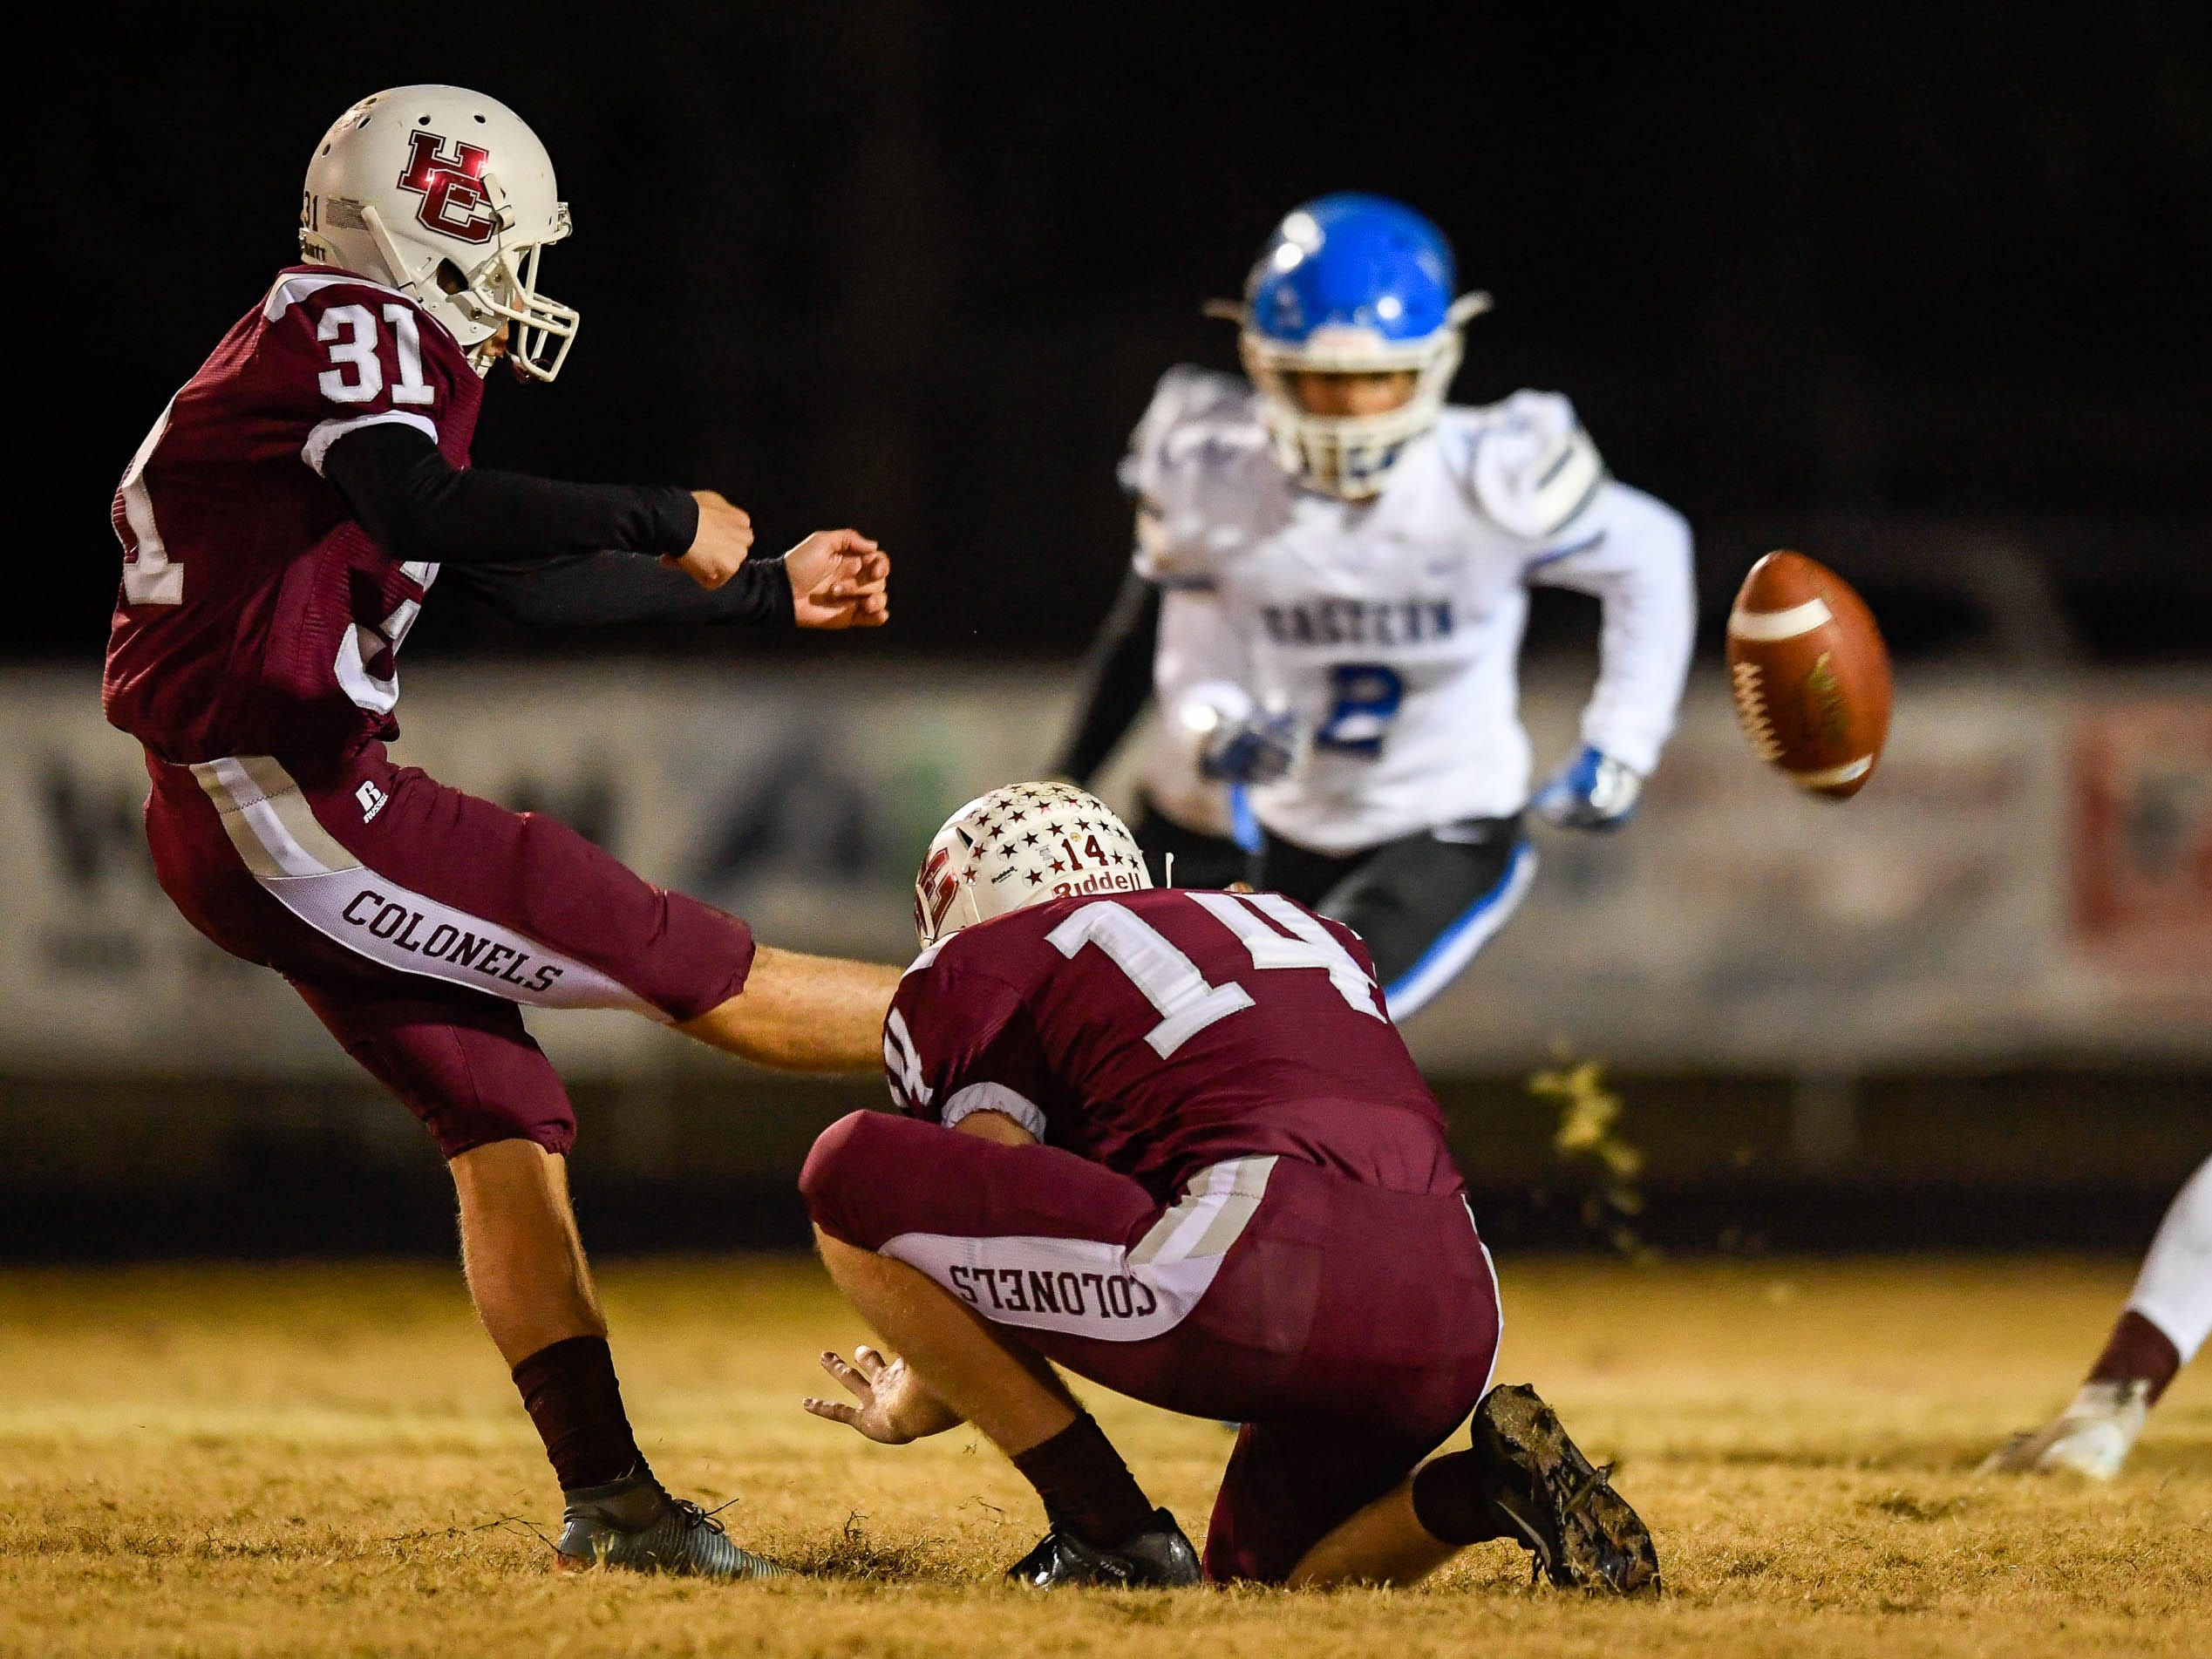 Henderson's Jaxon Stauffer (31) kicks a extra point as the Henderson County Colonels play the Louisville Eastern Eagles in the first round of the 6-A playoffs at Colonel Field Friday, November 2, 2018.